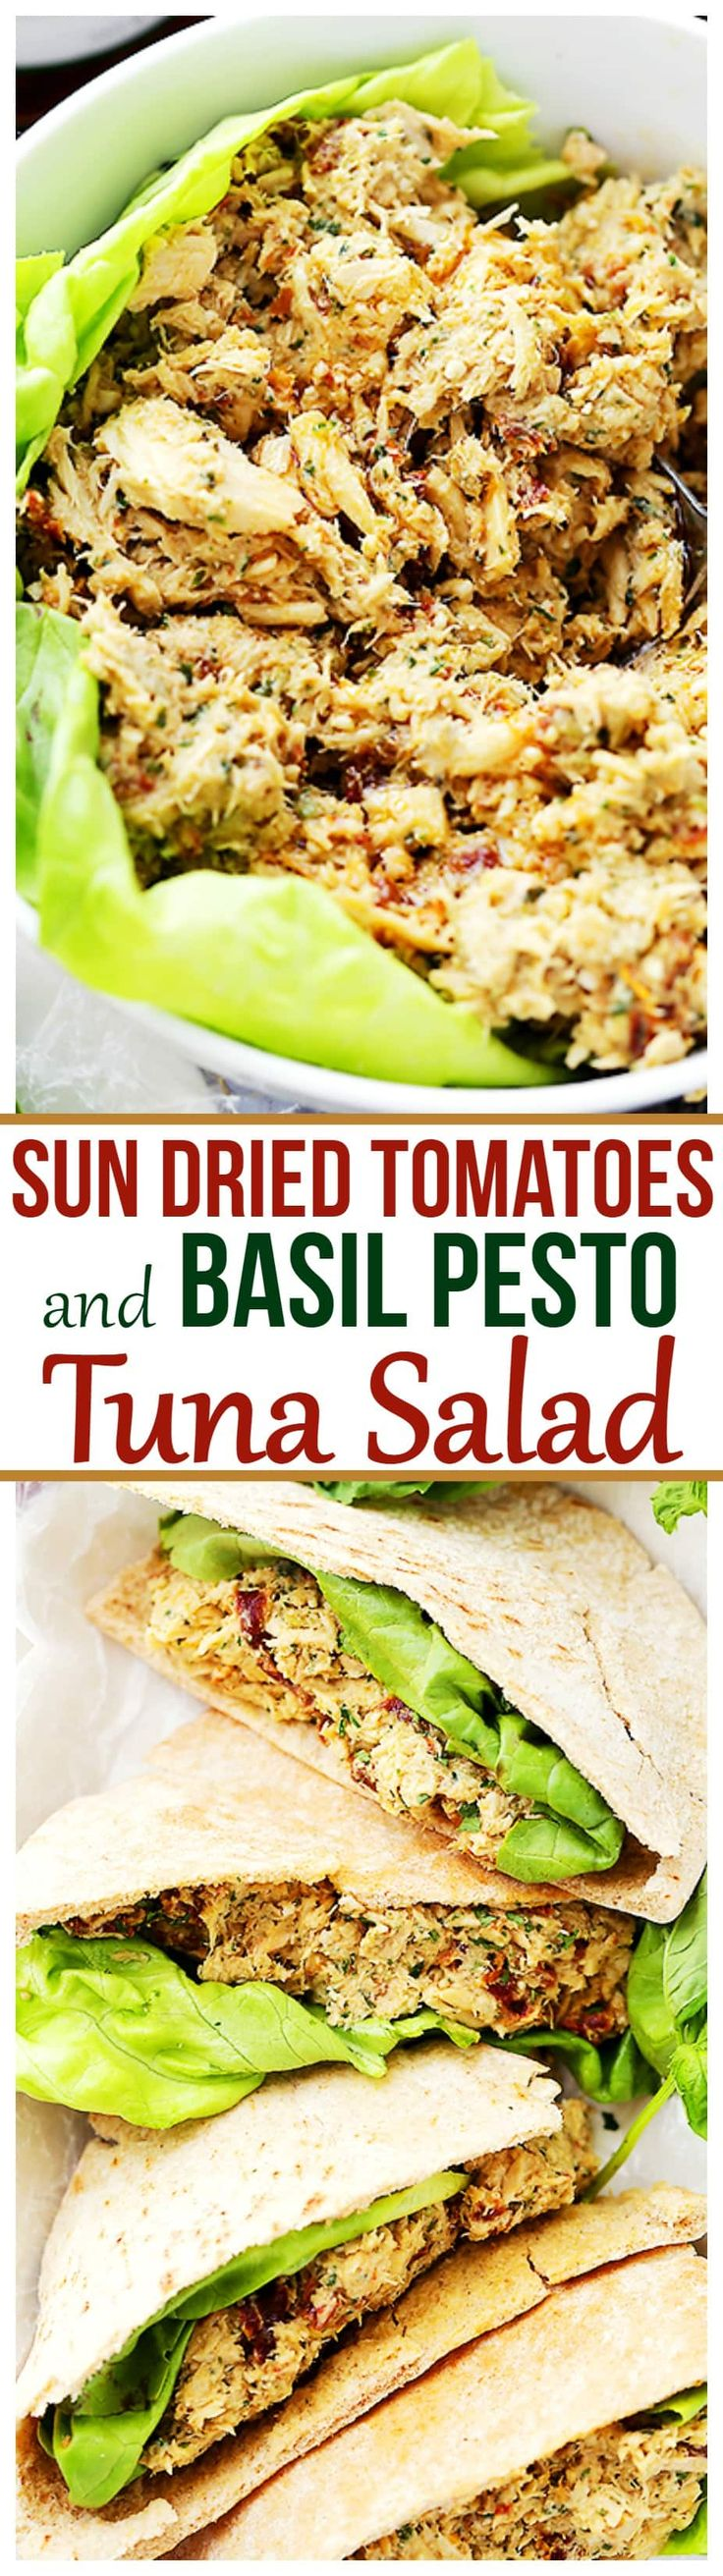 Sun Dried Tomatoes and Basil Pesto Tuna Salad - Combined with basil pesto and sun dried tomatoes, this tuna salad is about to become your next favorite salad recipe that is perfect for any summer picnic, a quick dinner, or a delicious lunch!   Points in recipe builder